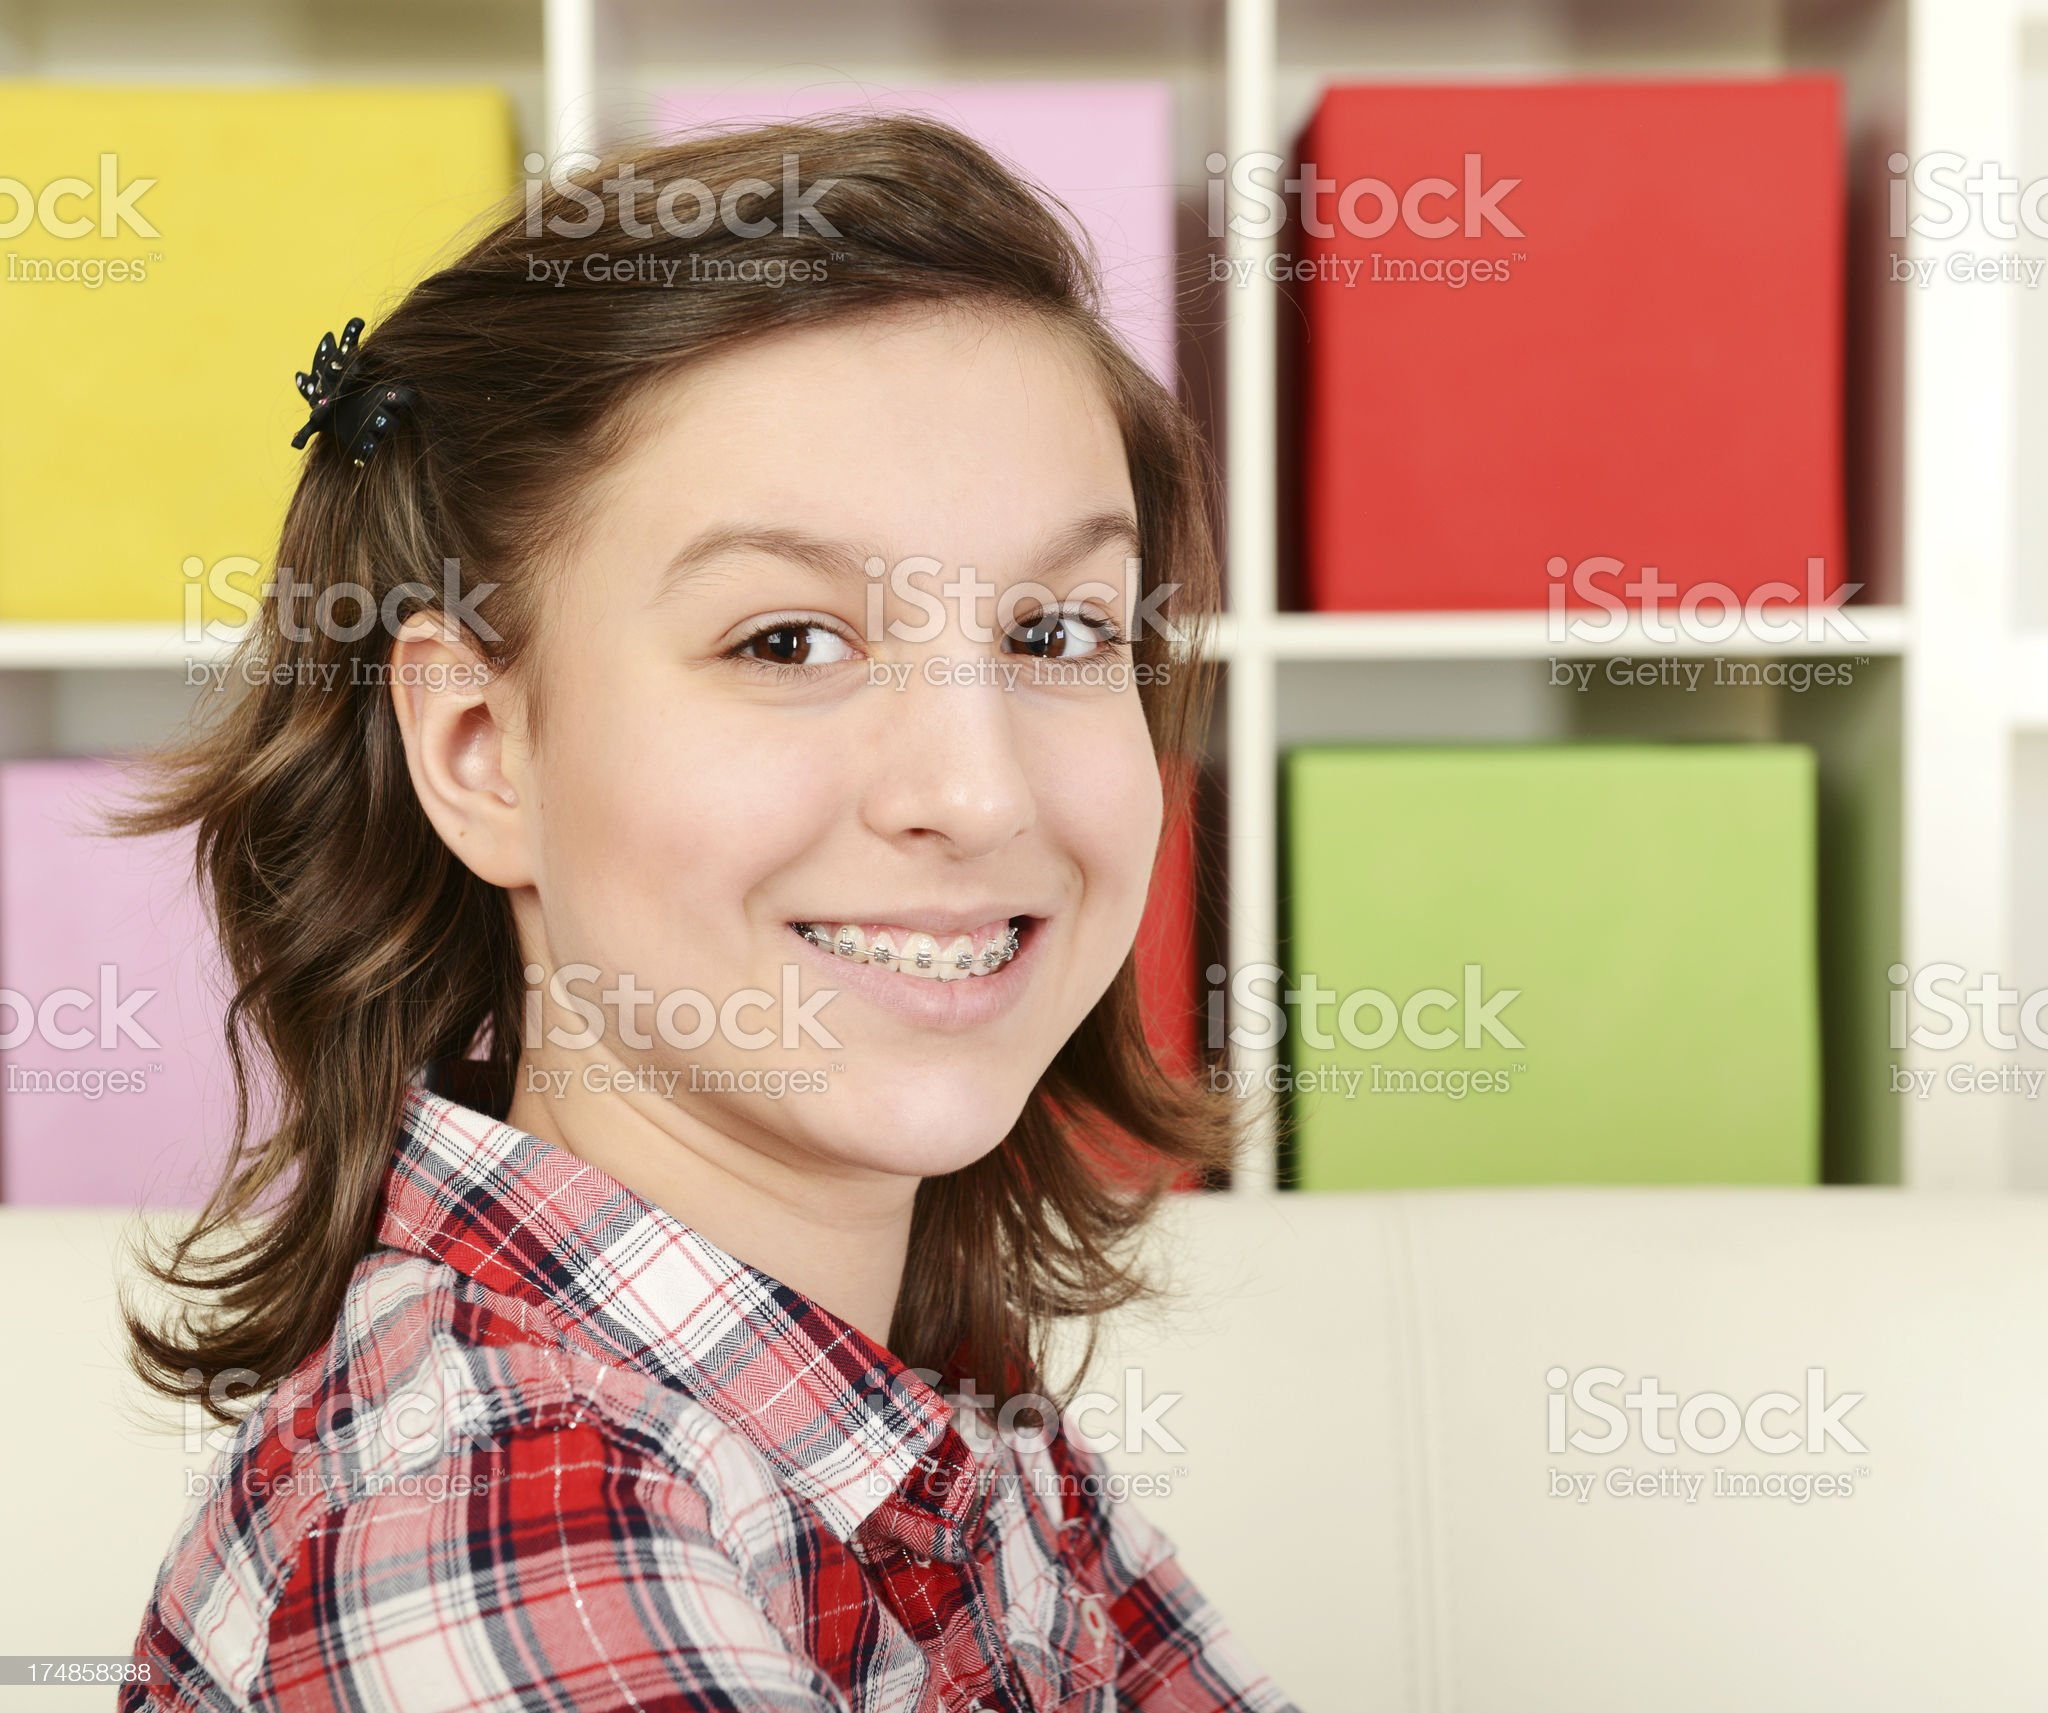 girl with braces royalty-free stock photo